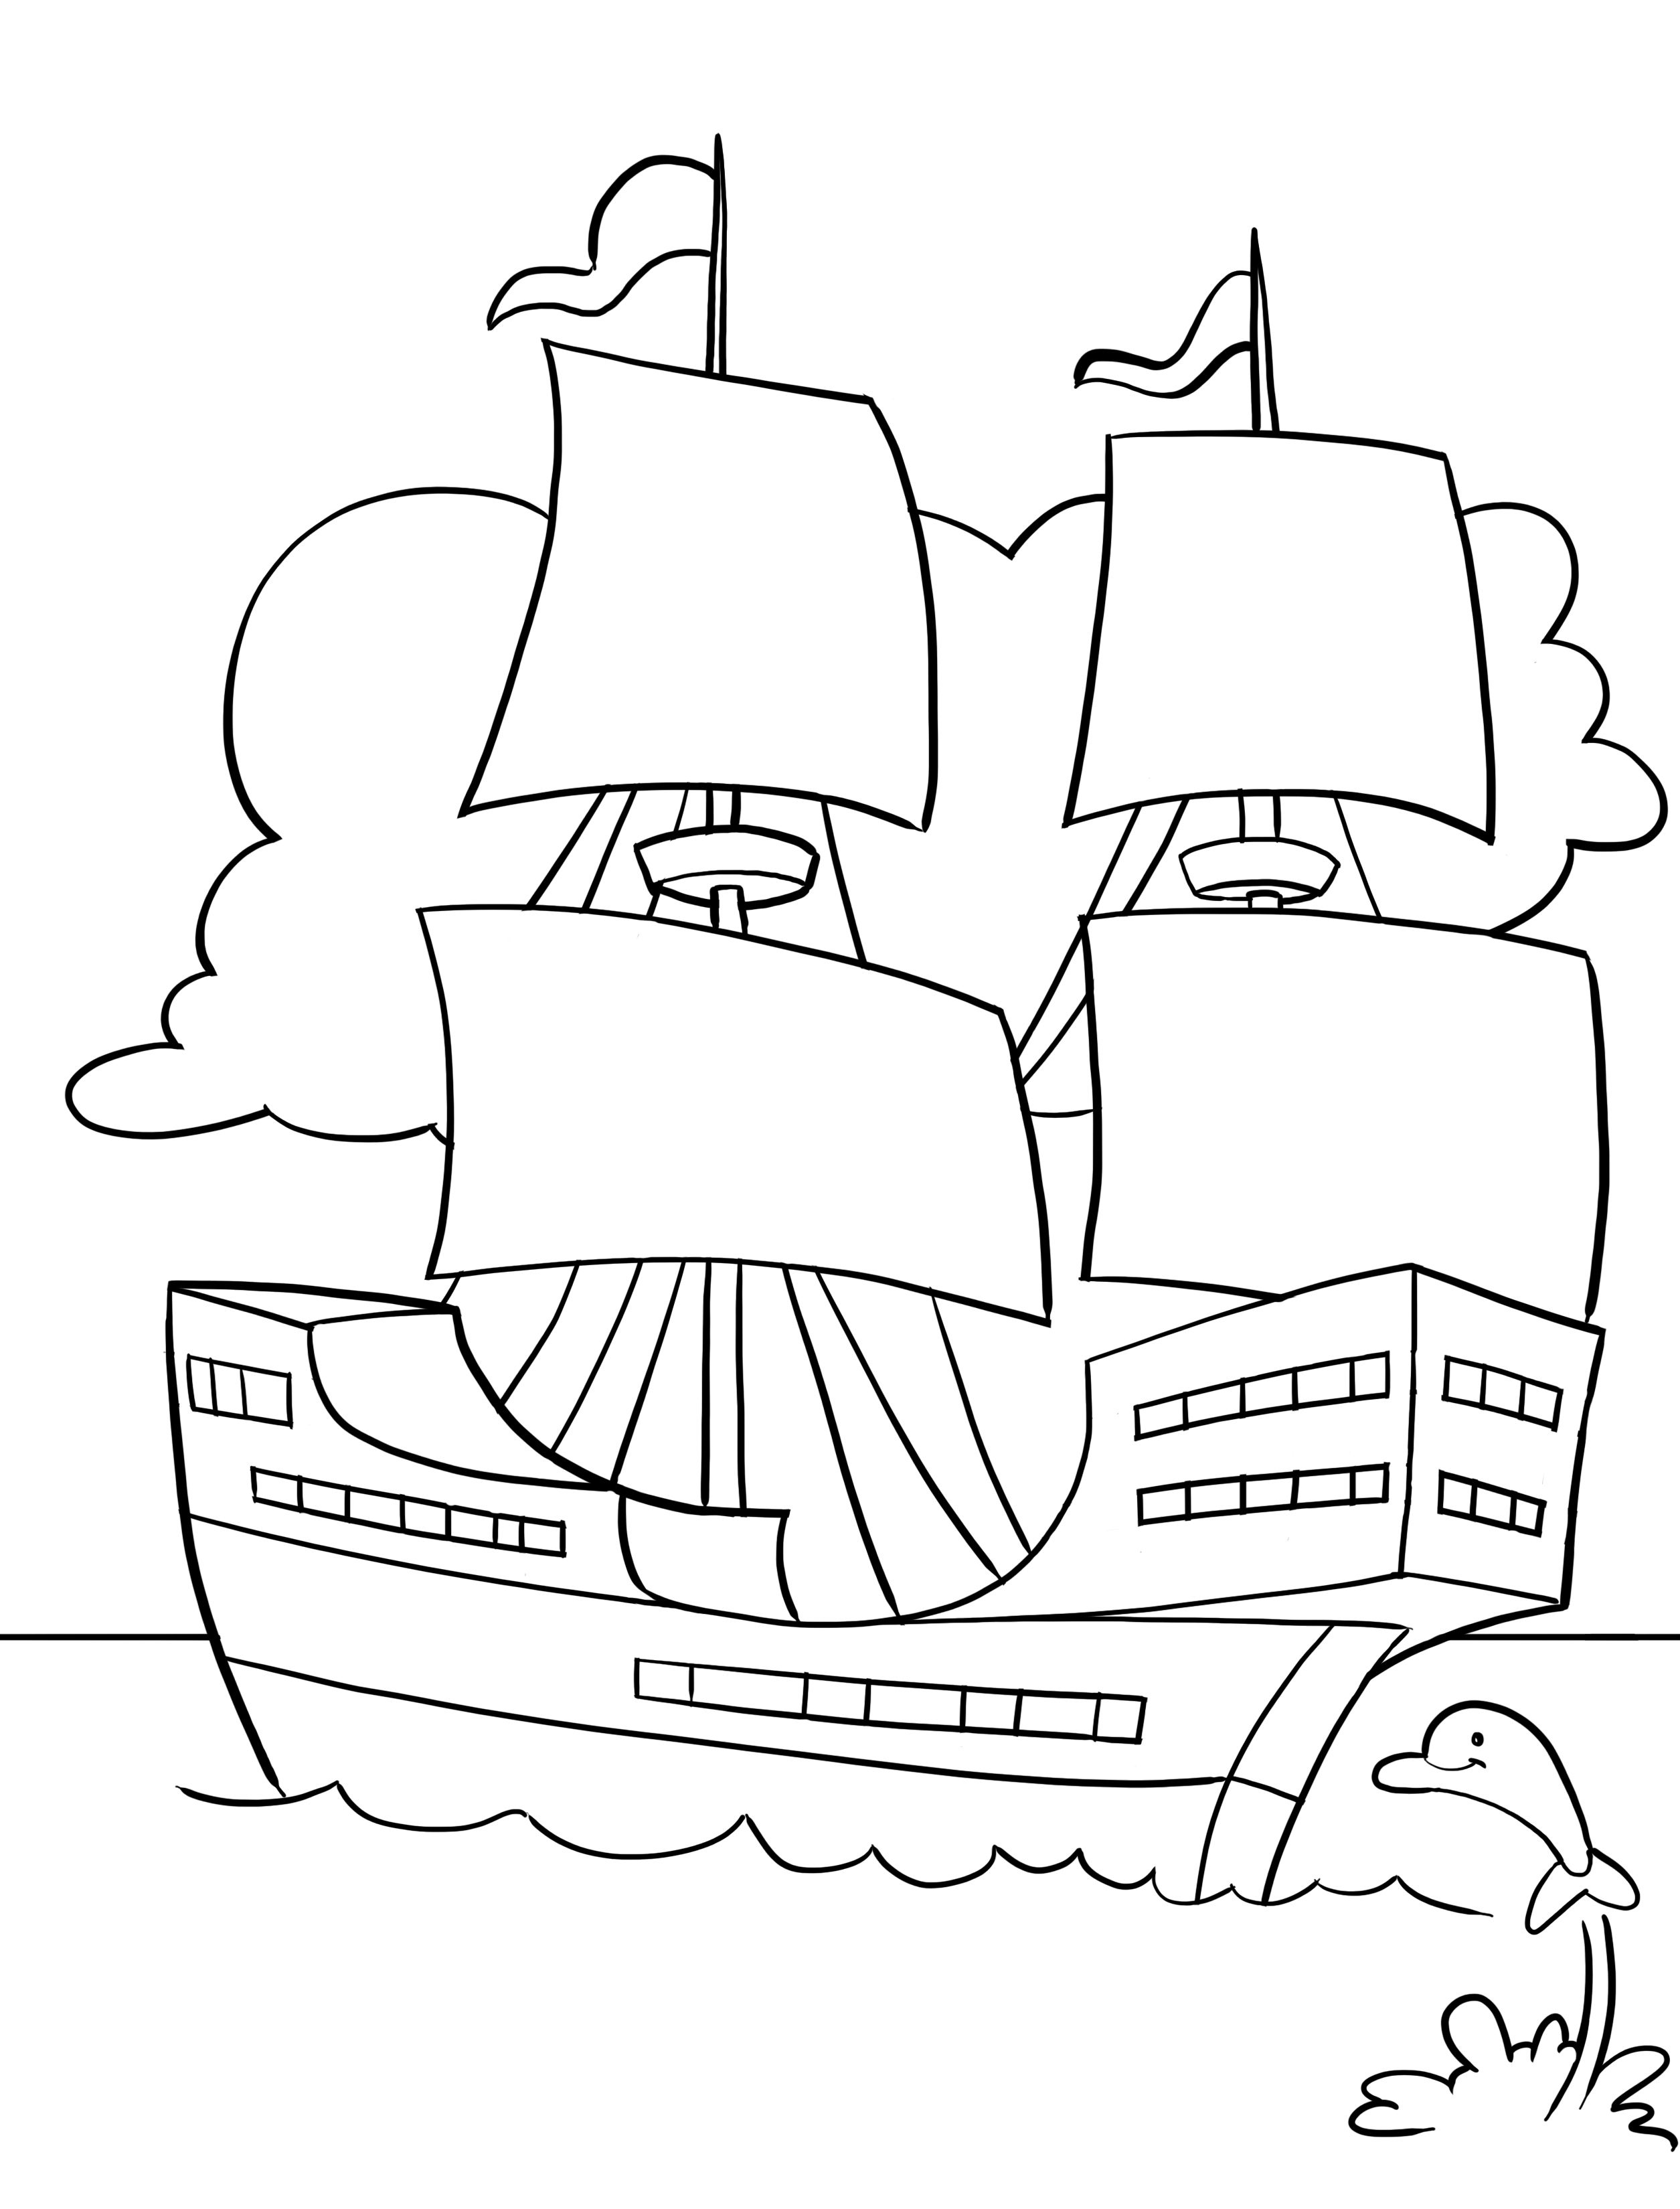 Mayflower Coloring Pages Best Coloring Pages For Kids